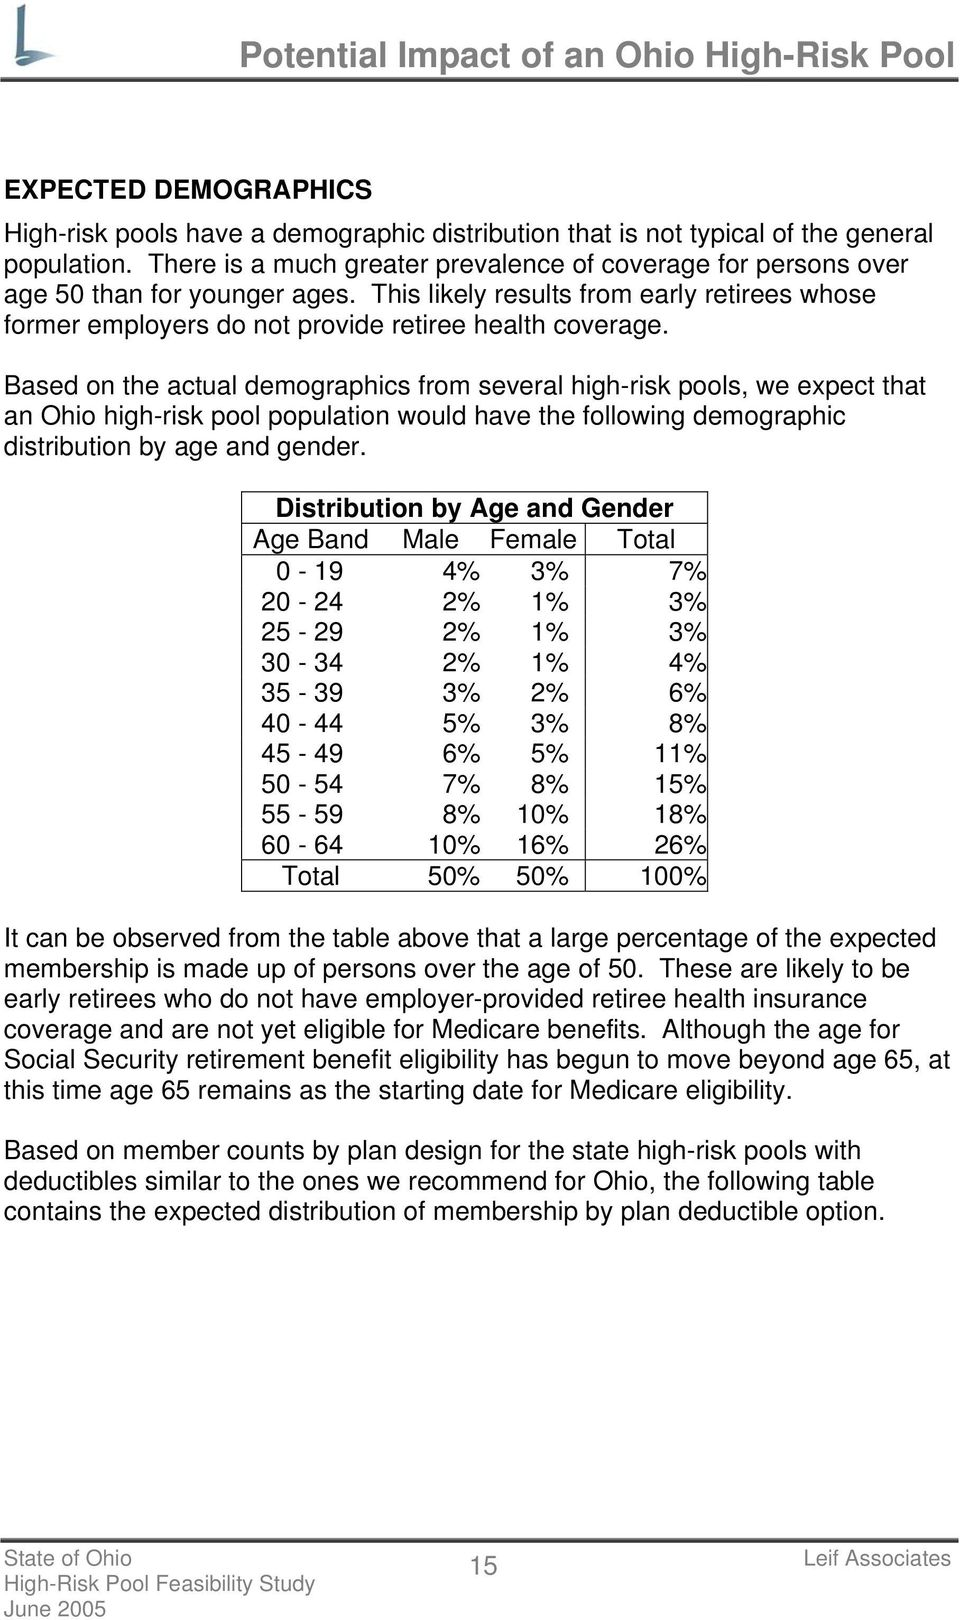 Based on the actual demographics from several high-risk pools, we expect that an Ohio high-risk pool population would have the following demographic distribution by age and gender.